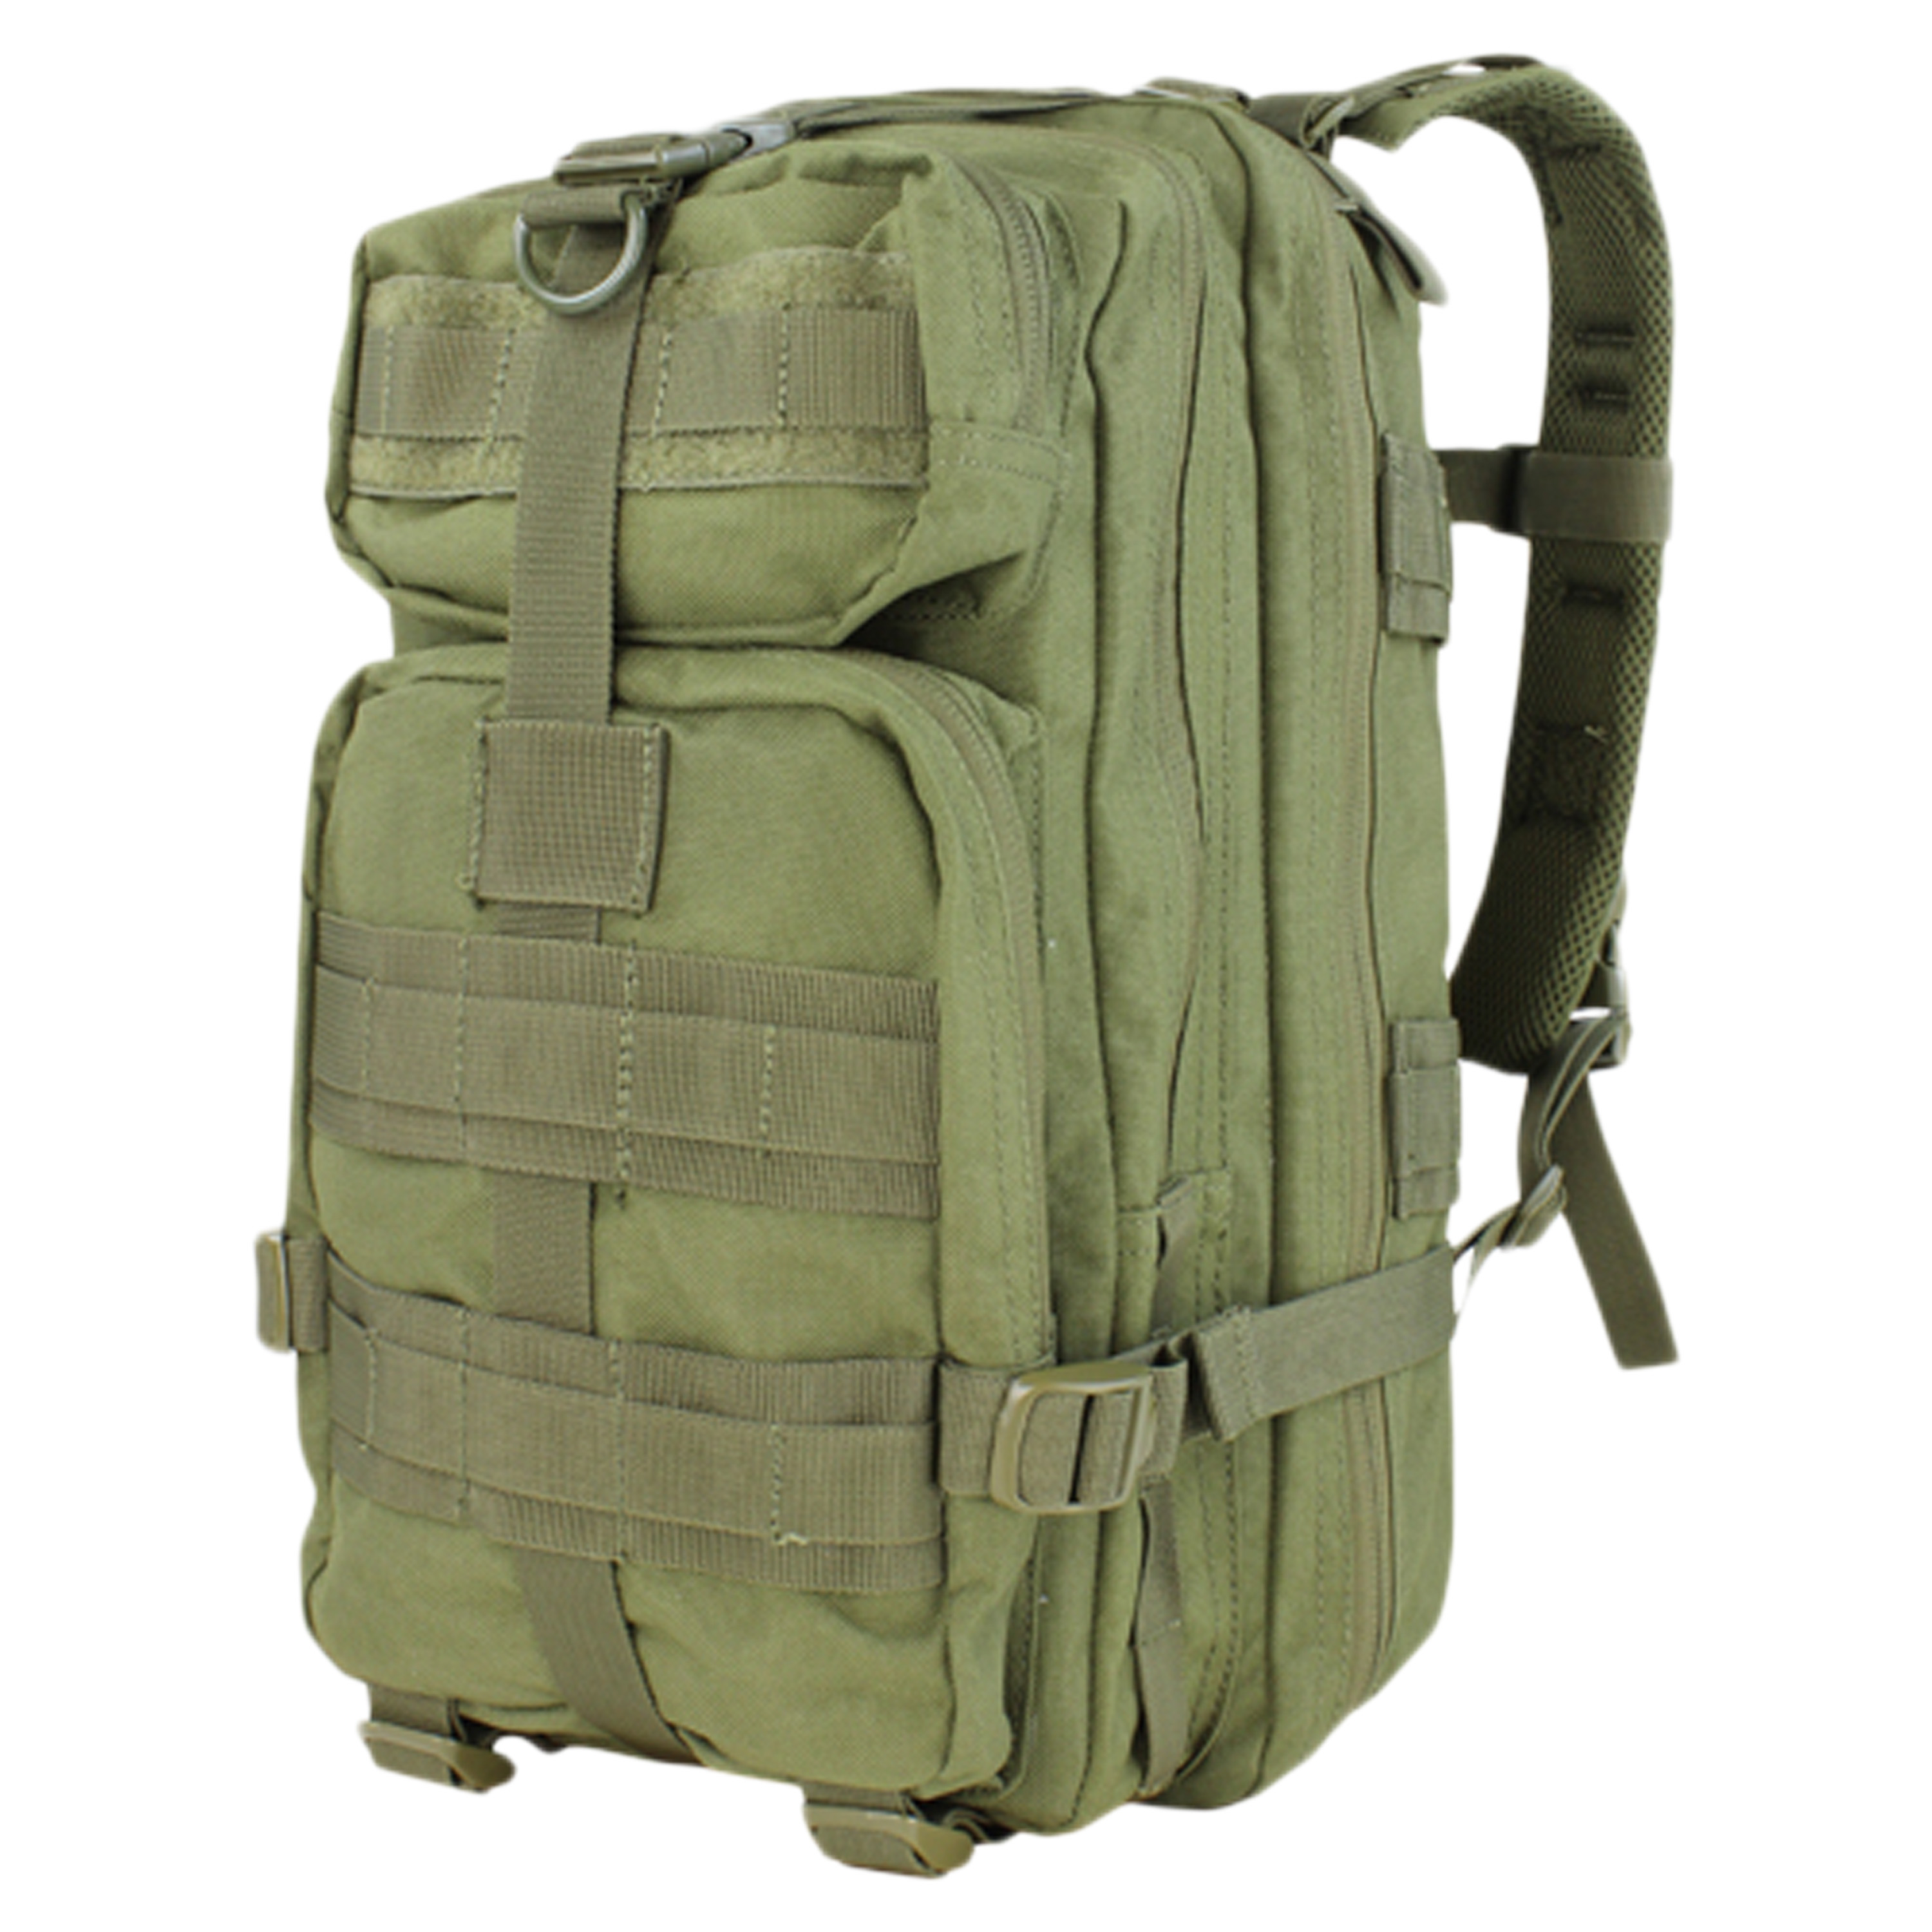 Condor Sac à dos Assault Pack Compact olive